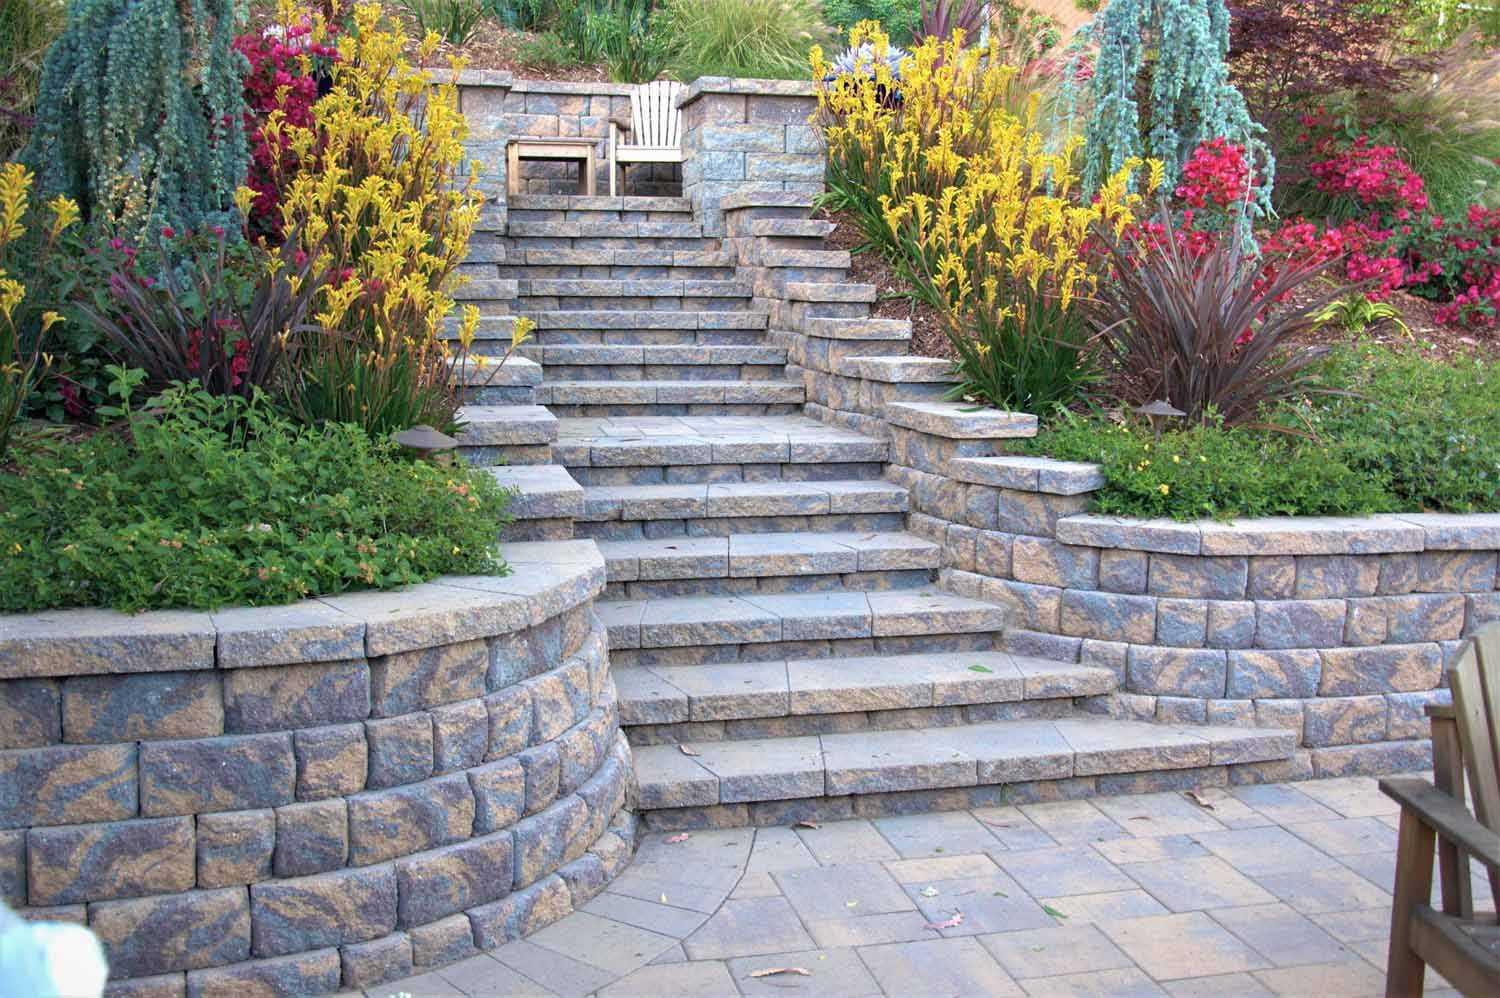 Paverstone Staris And Retaining Wall With Landscaping